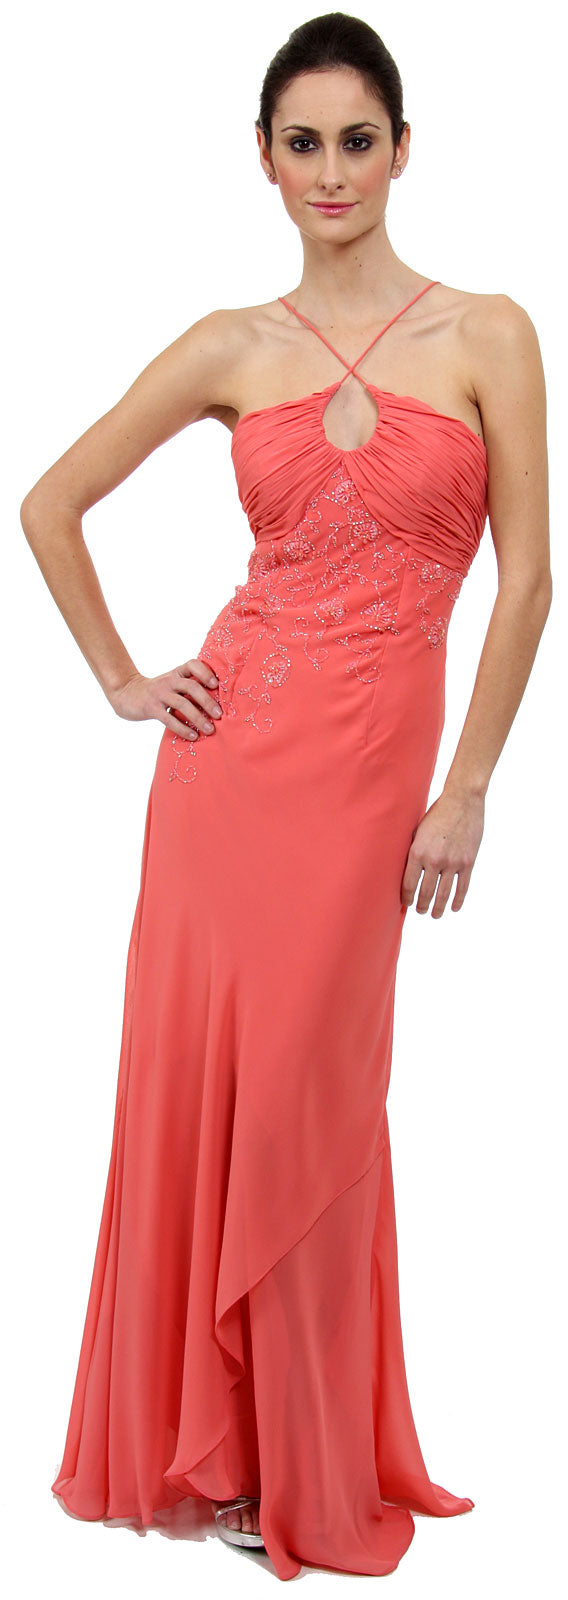 Main image of Keyhole Ruched Bust Beaded Formal  prom Dress